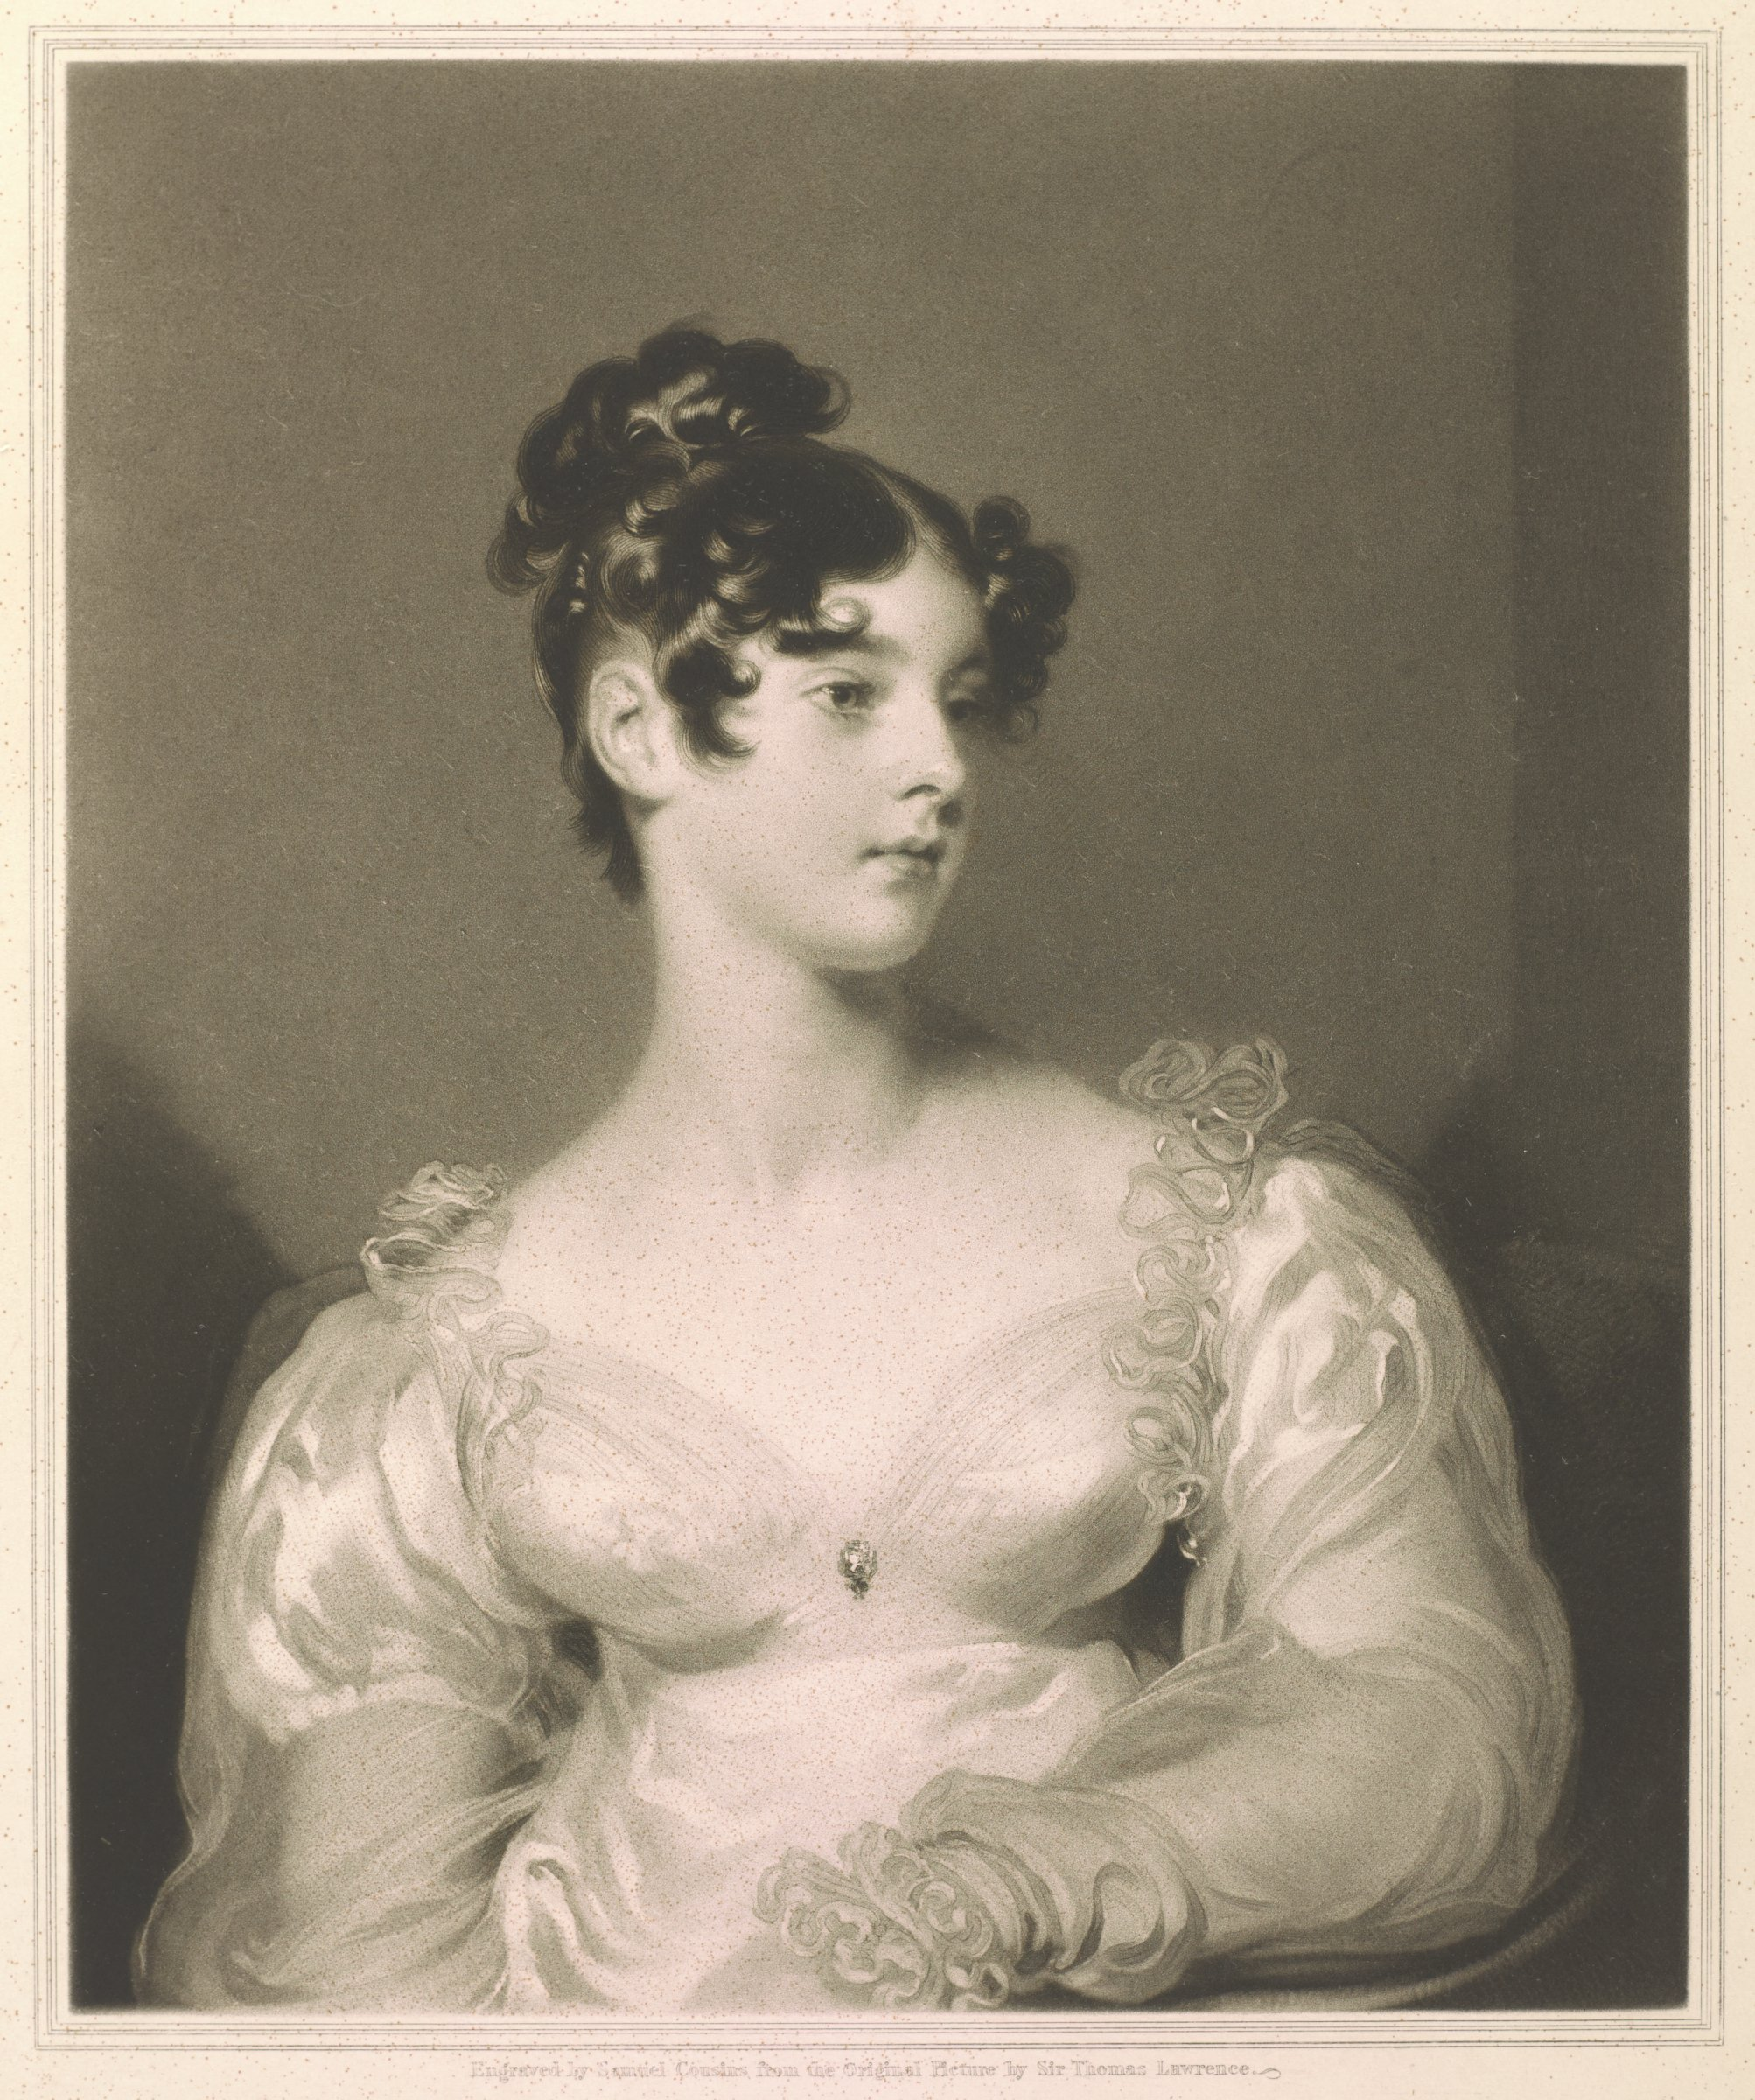 Portrait of woman with ruffled dress looking to her left.